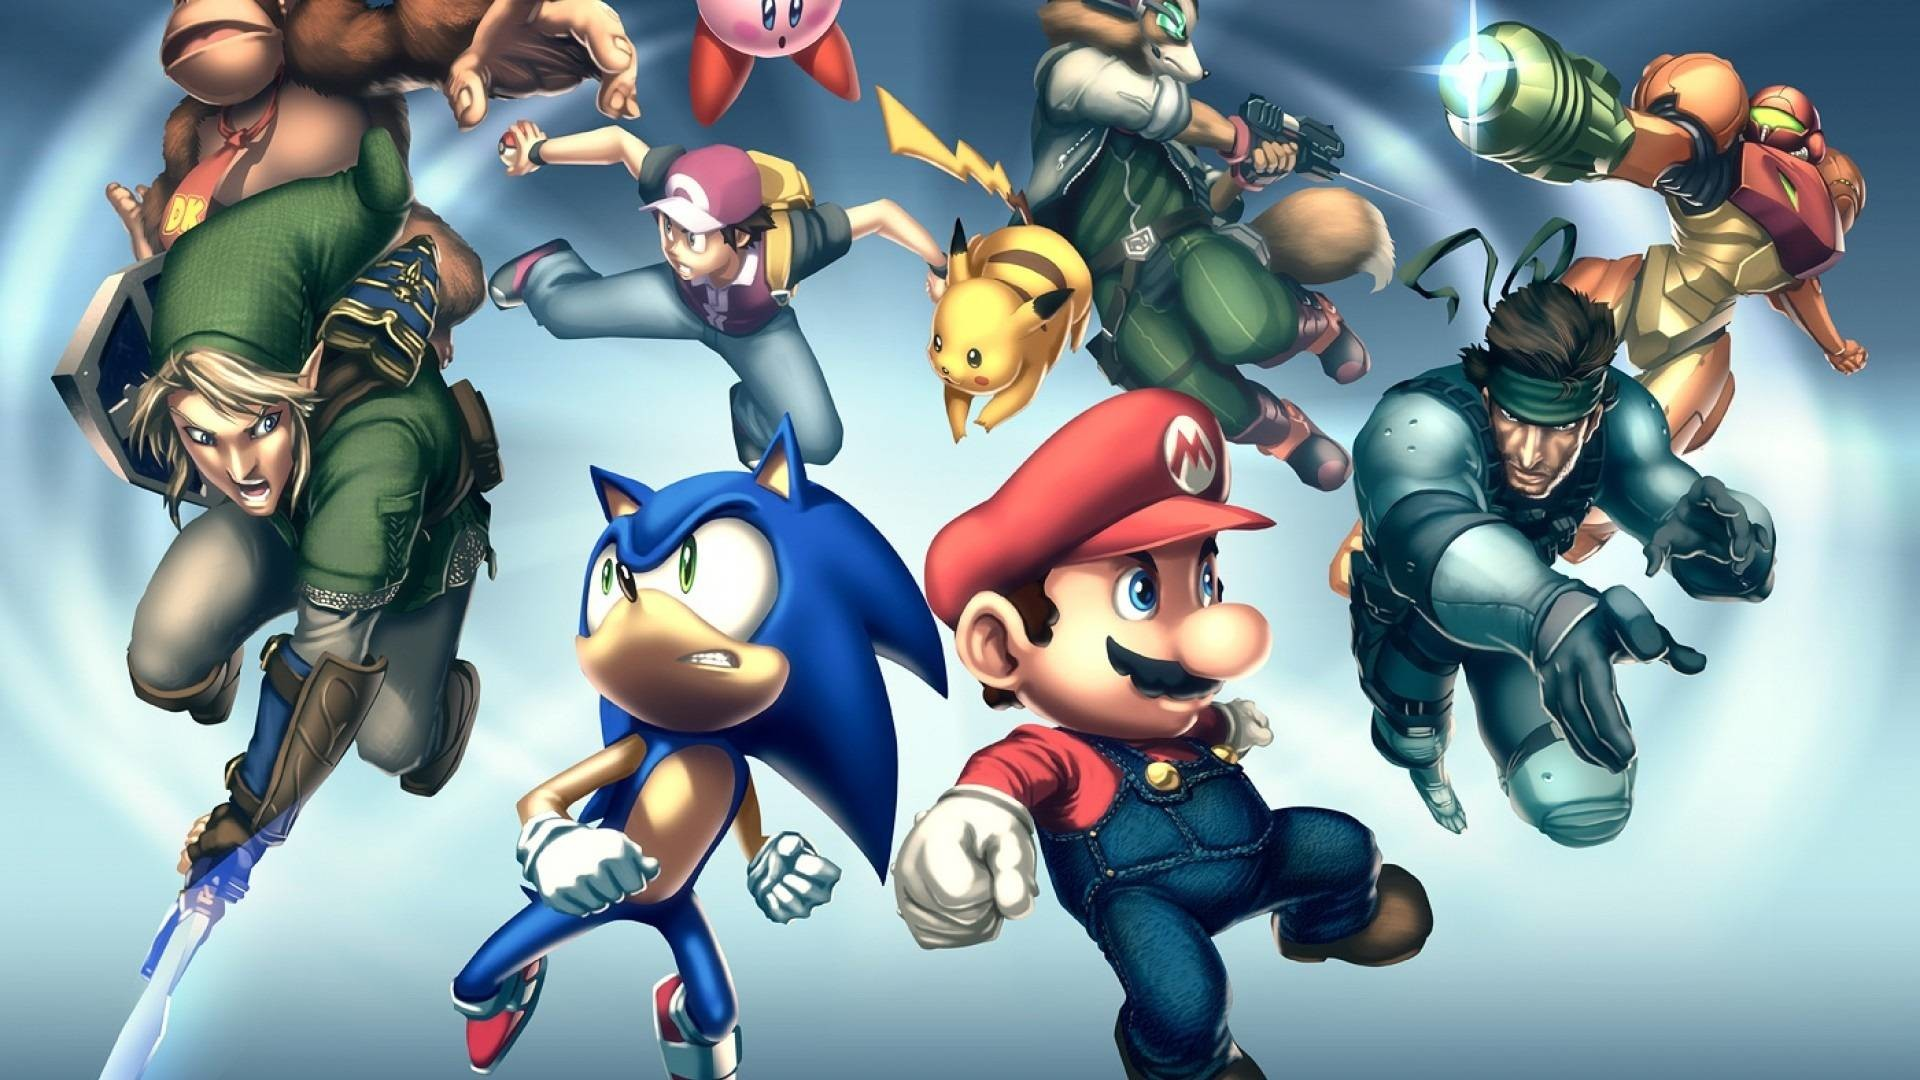 1920x1080 awesome nintendo wallpaper 32857